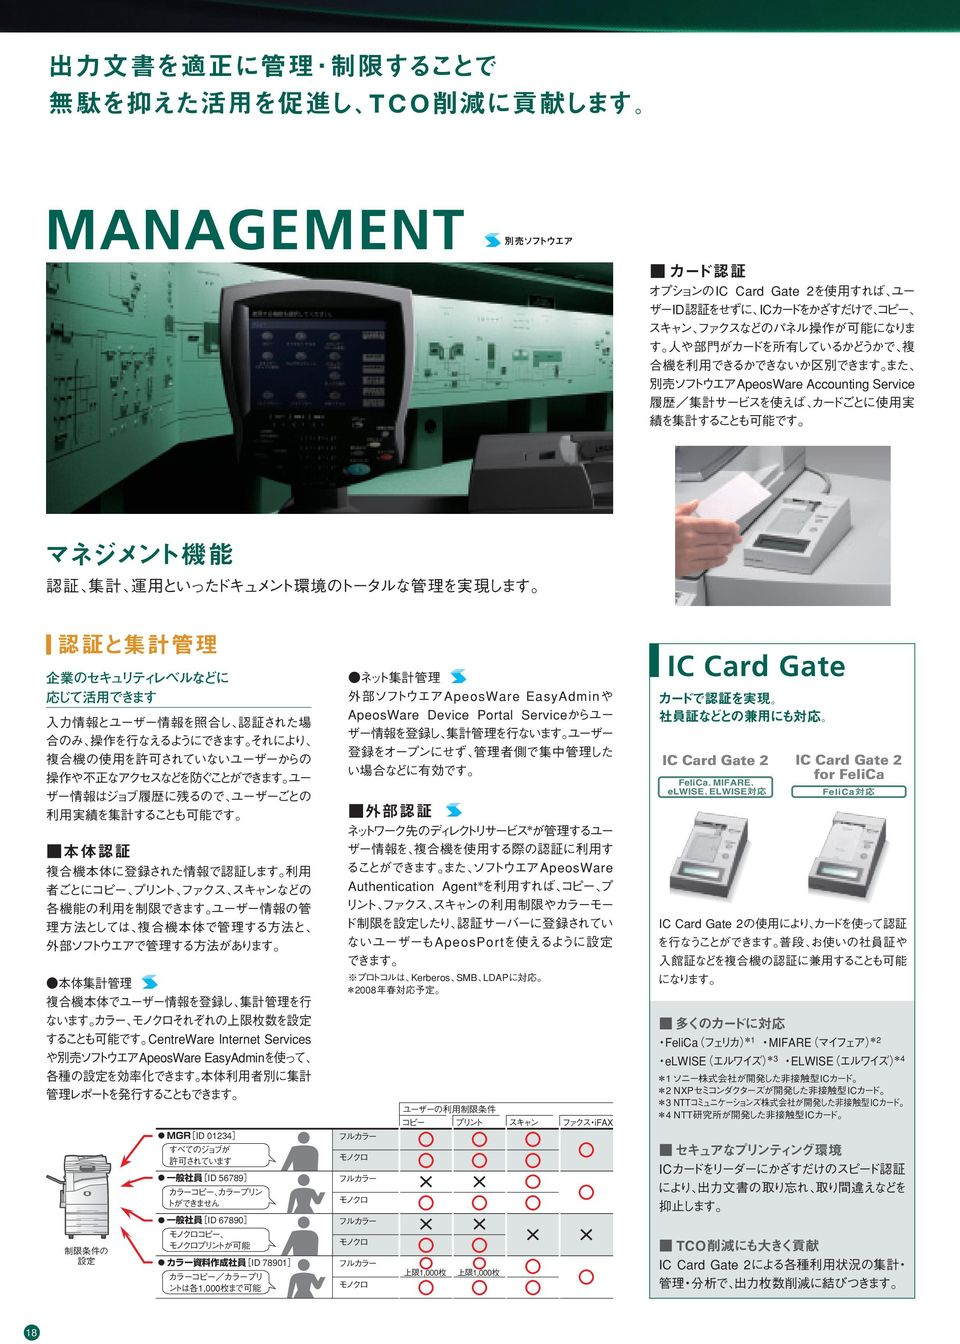 Card Gate 2 IC